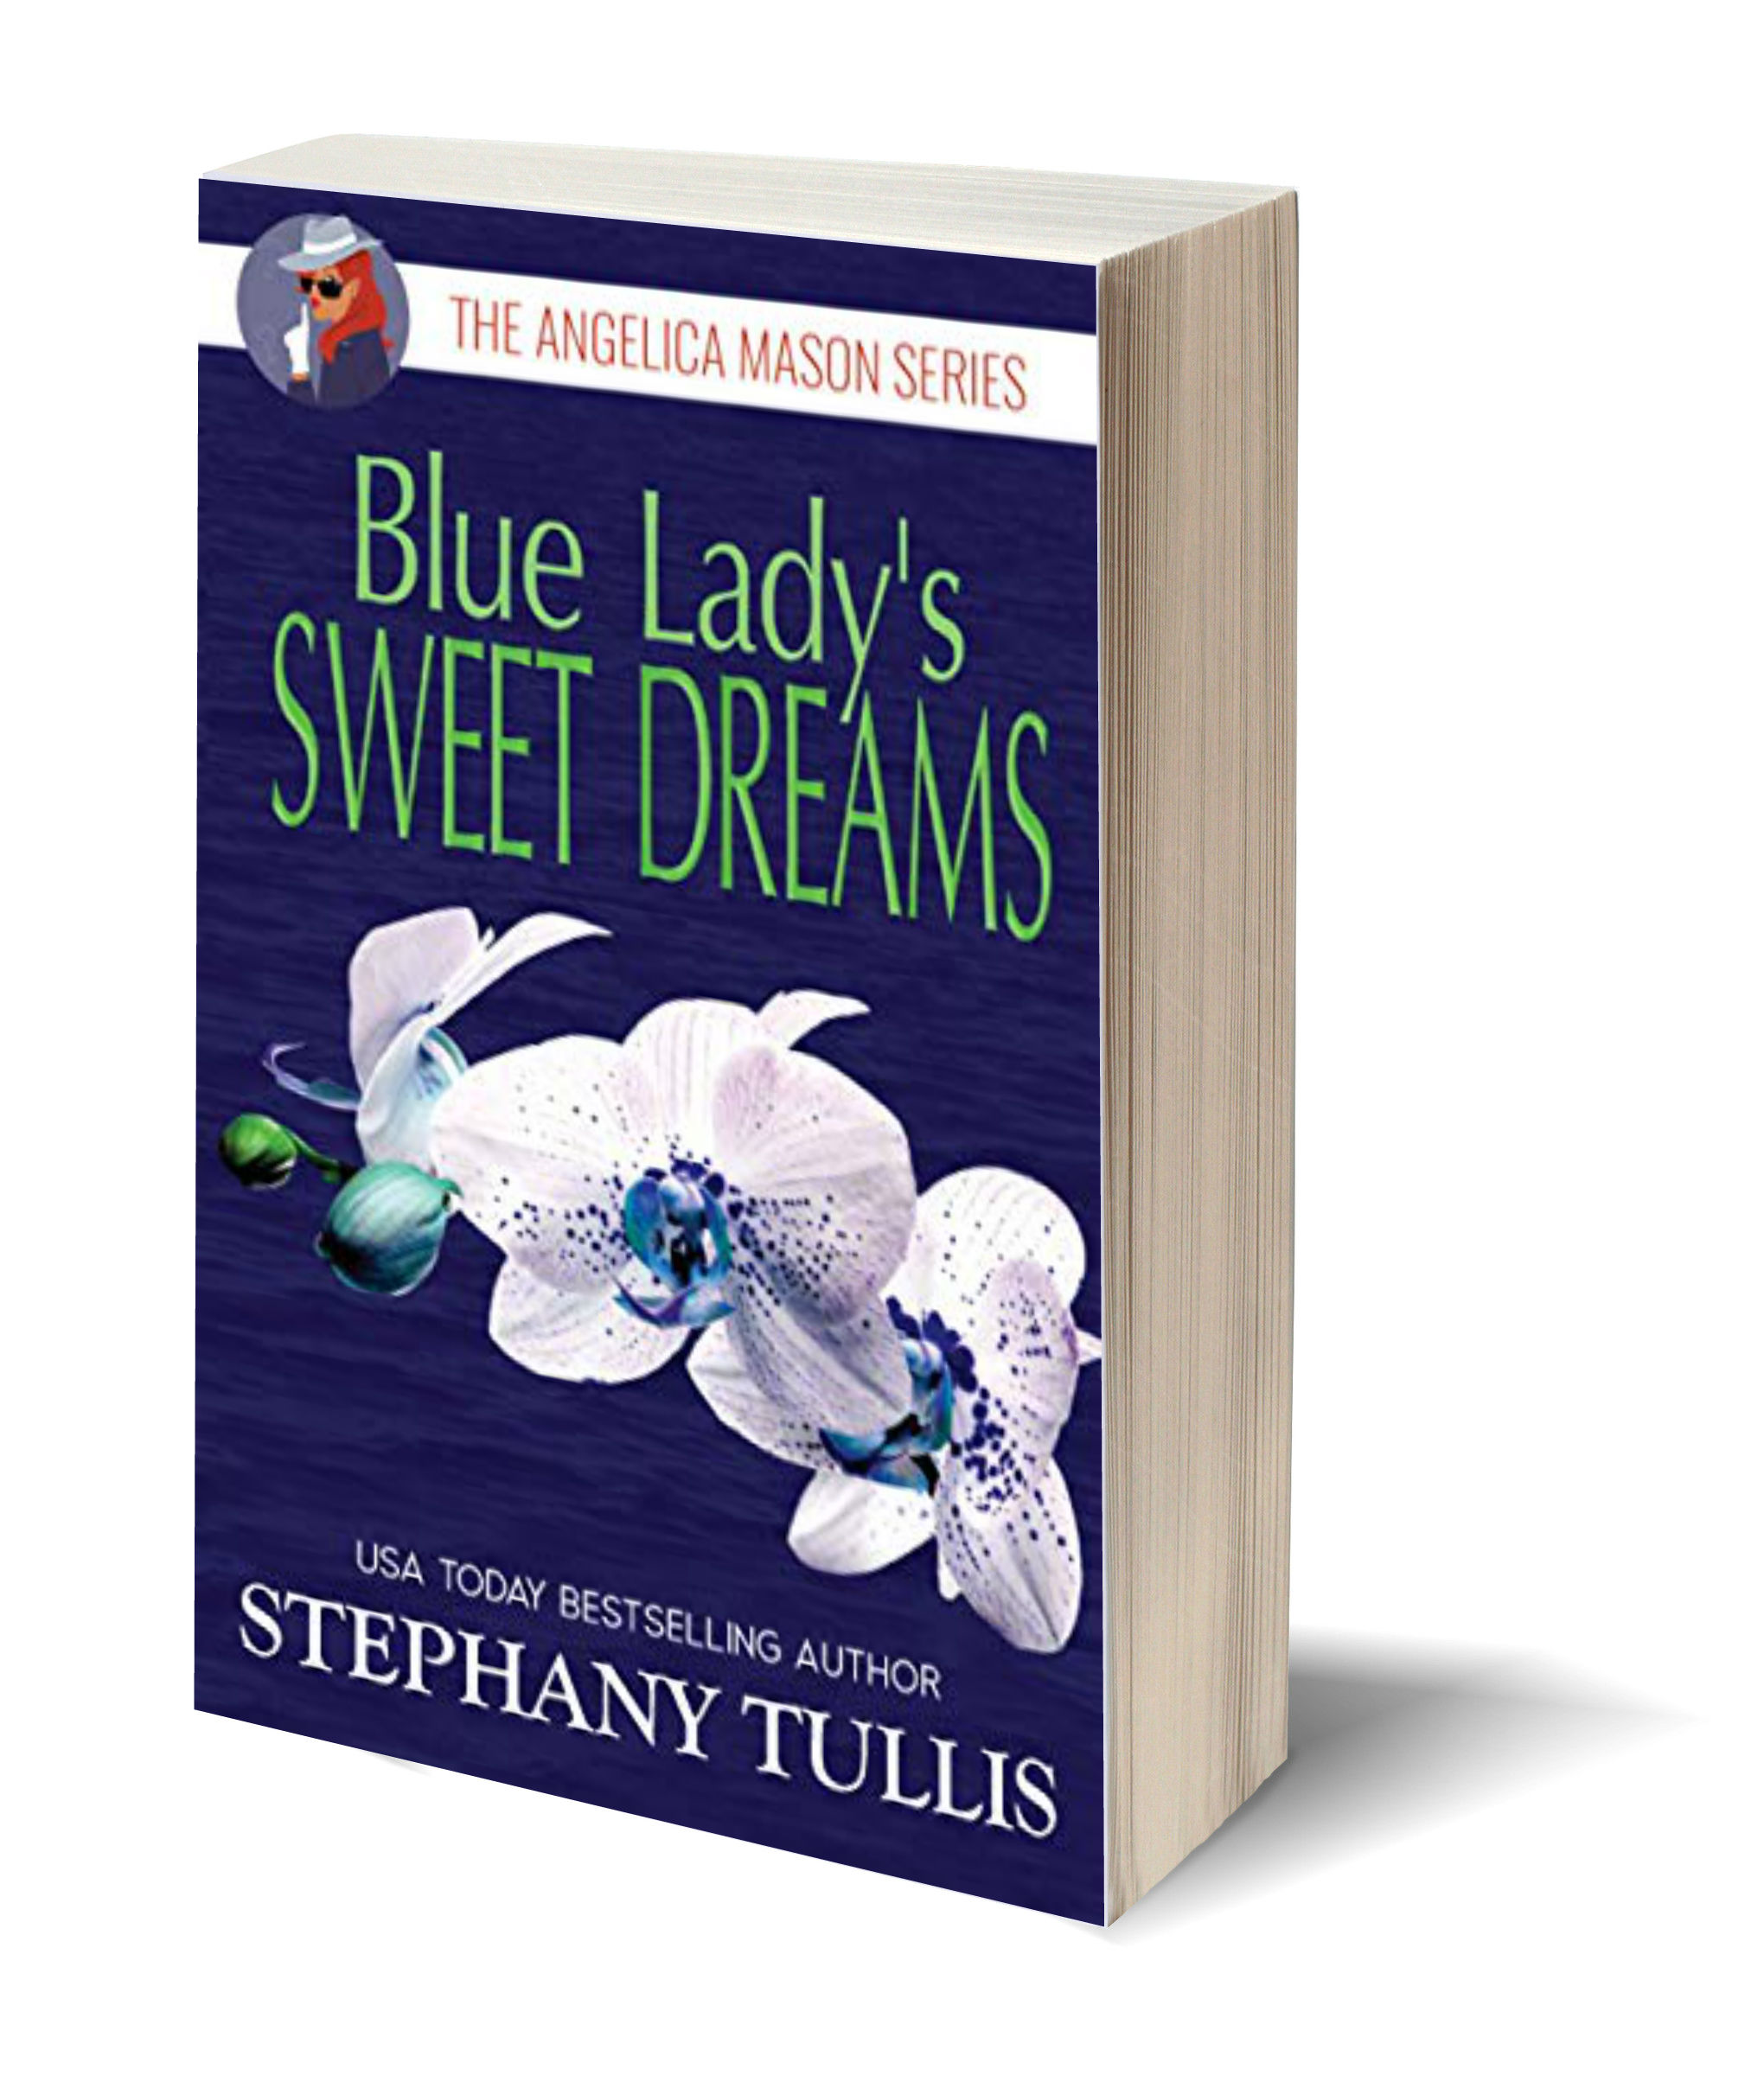 Blue Lady's sweet dreams USA 3D-Book-Template